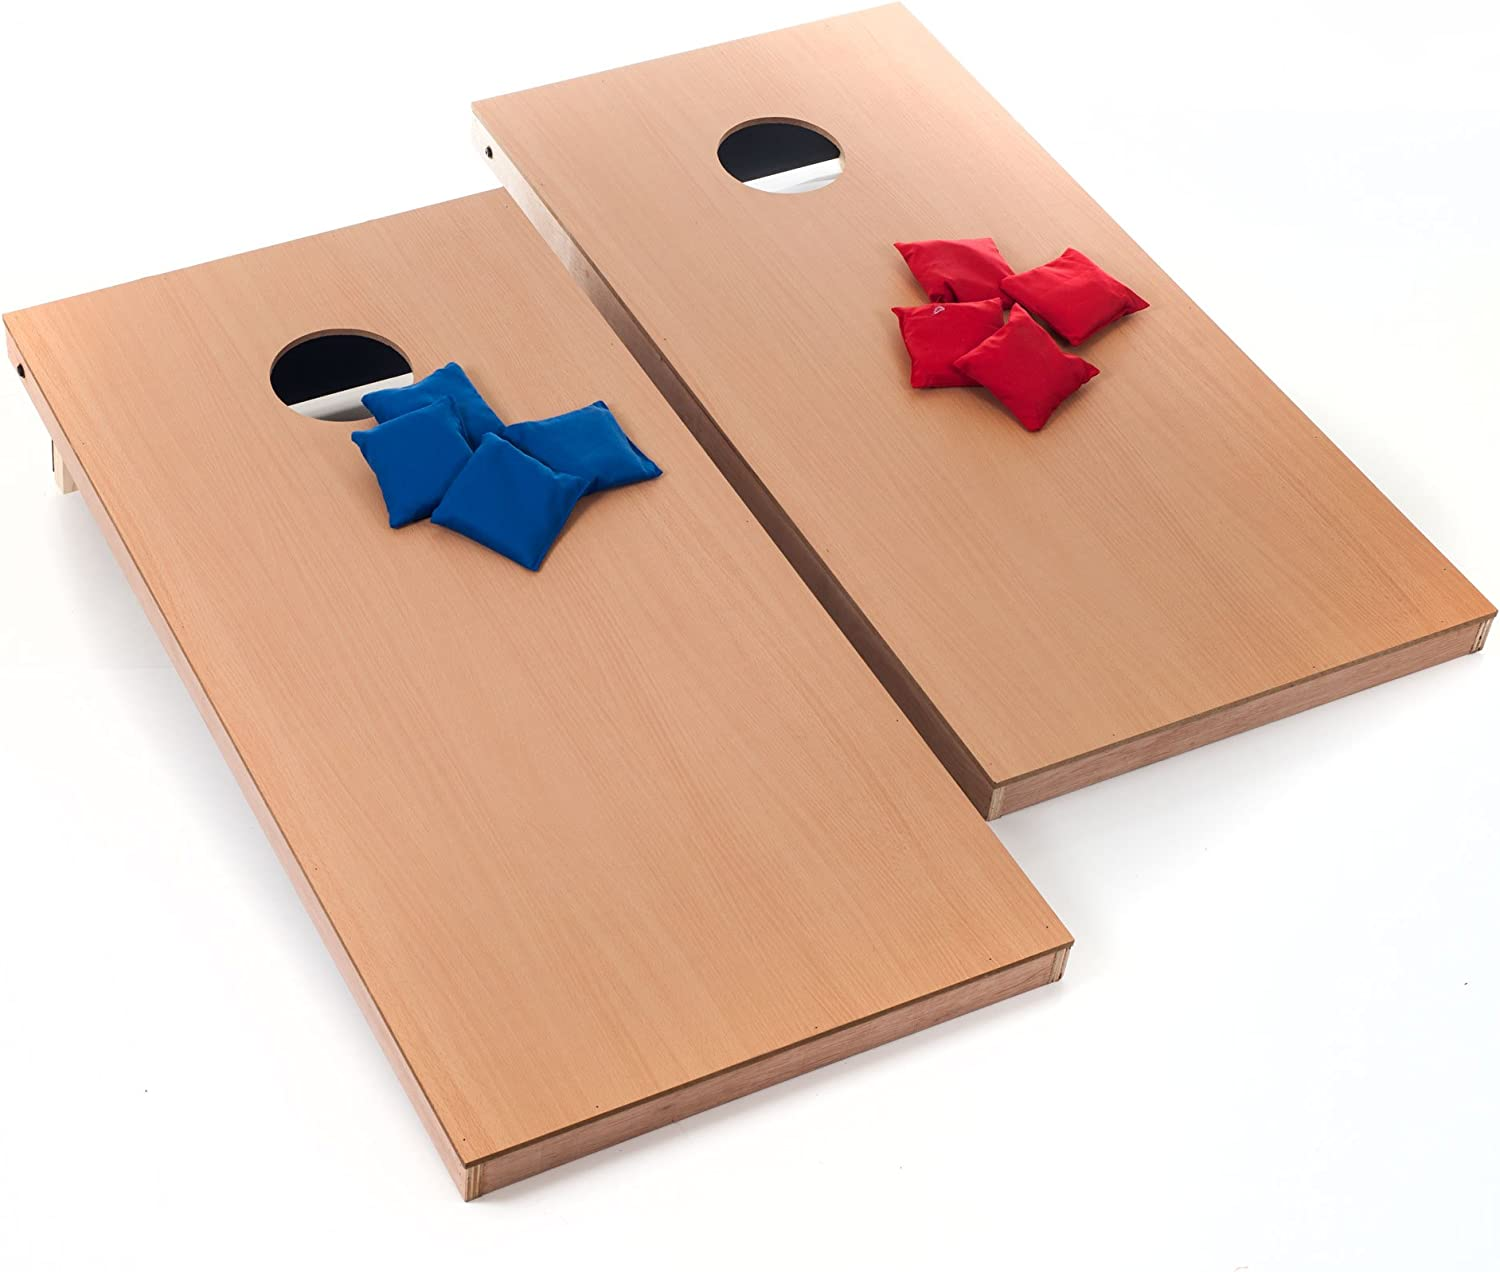 Outdoor Cornhole Lawn Game Set-Family Friendly, Fun for Kids and Perfect for Your Next Tailgate- Official Size Boards and Bags by Hey! Play!